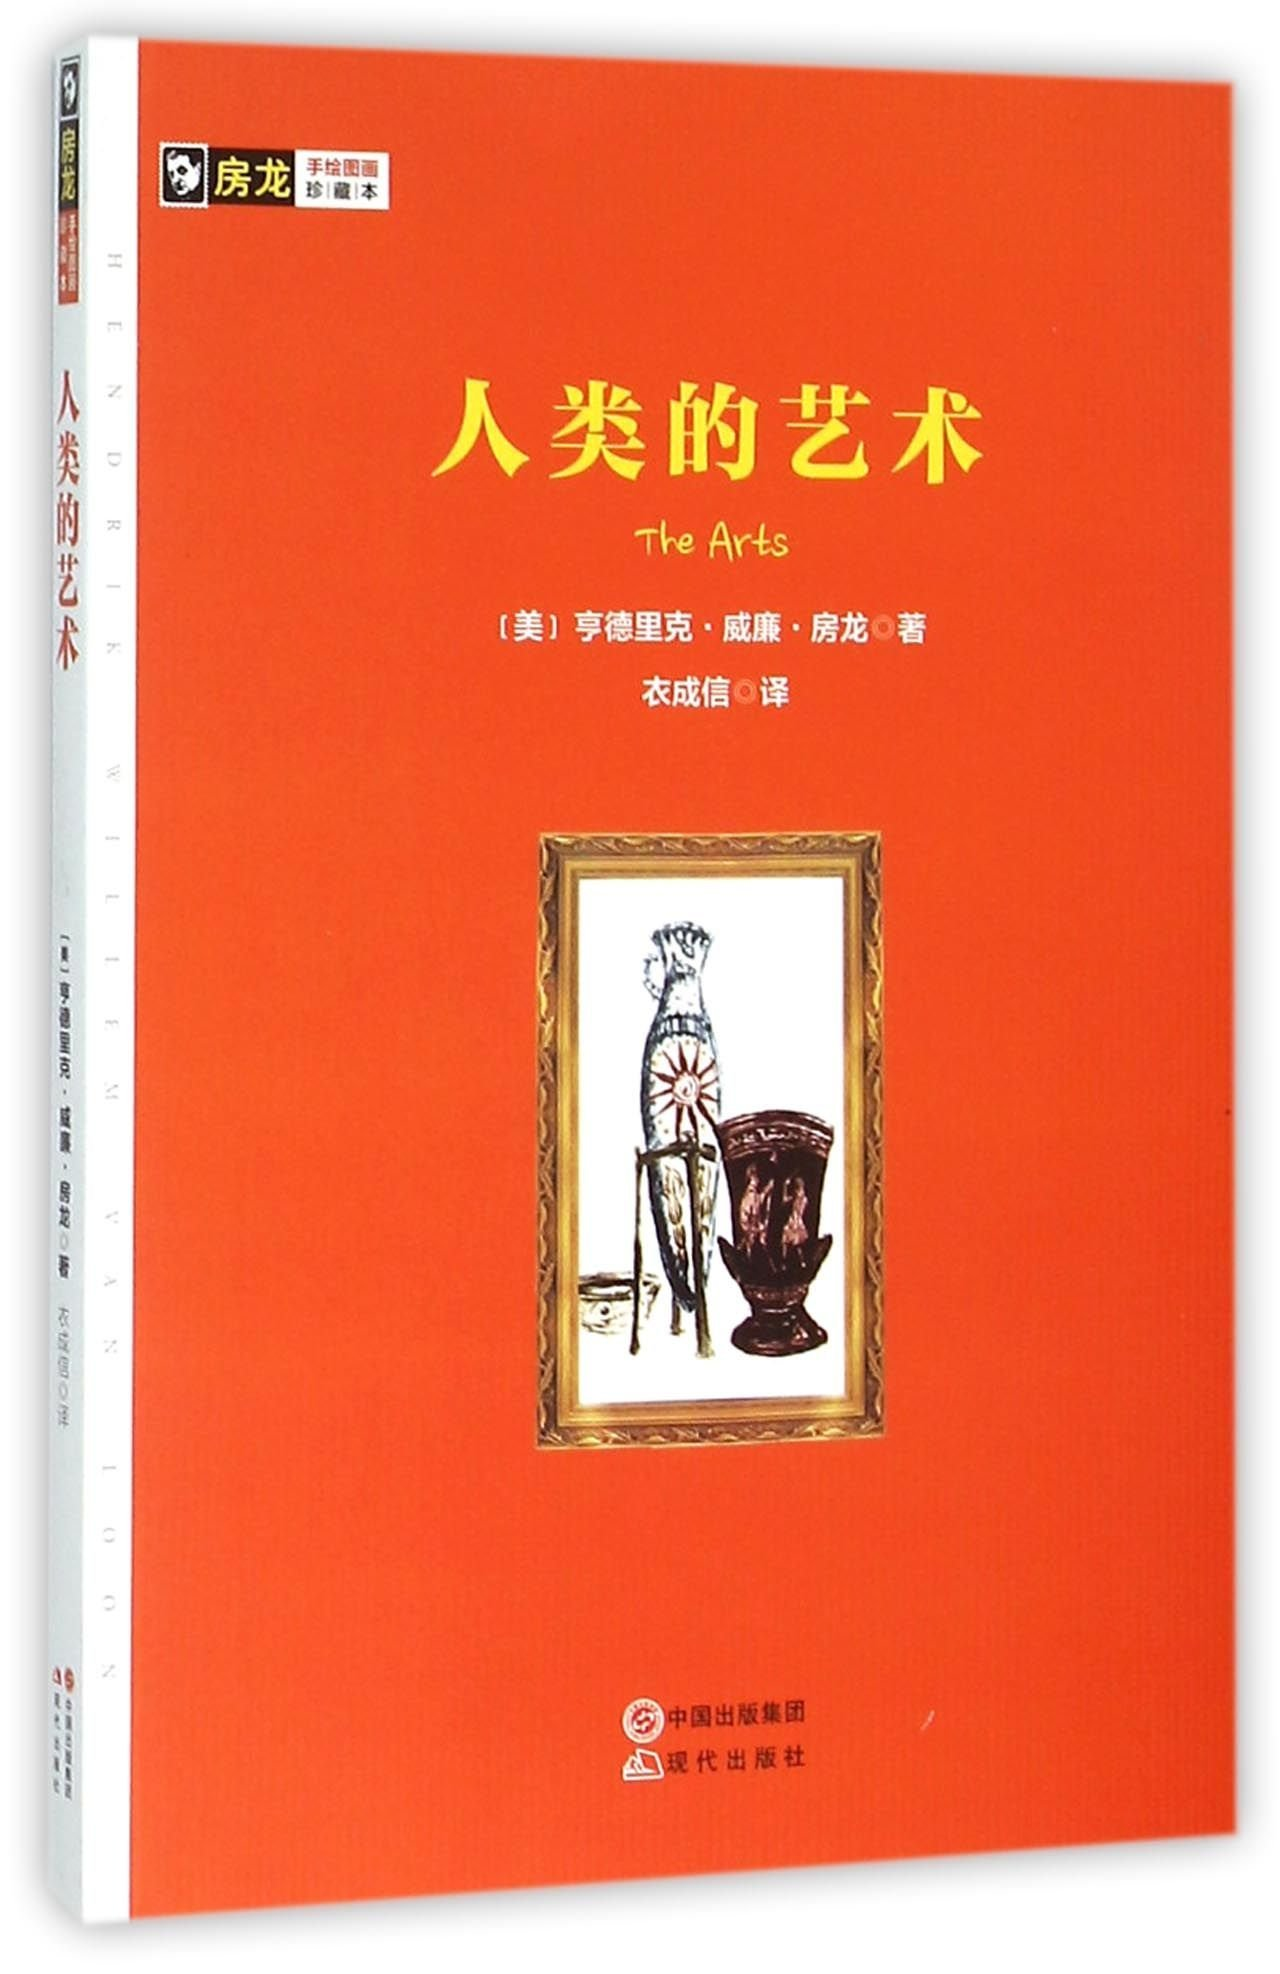 The Arts (Chinese Edition) PDF